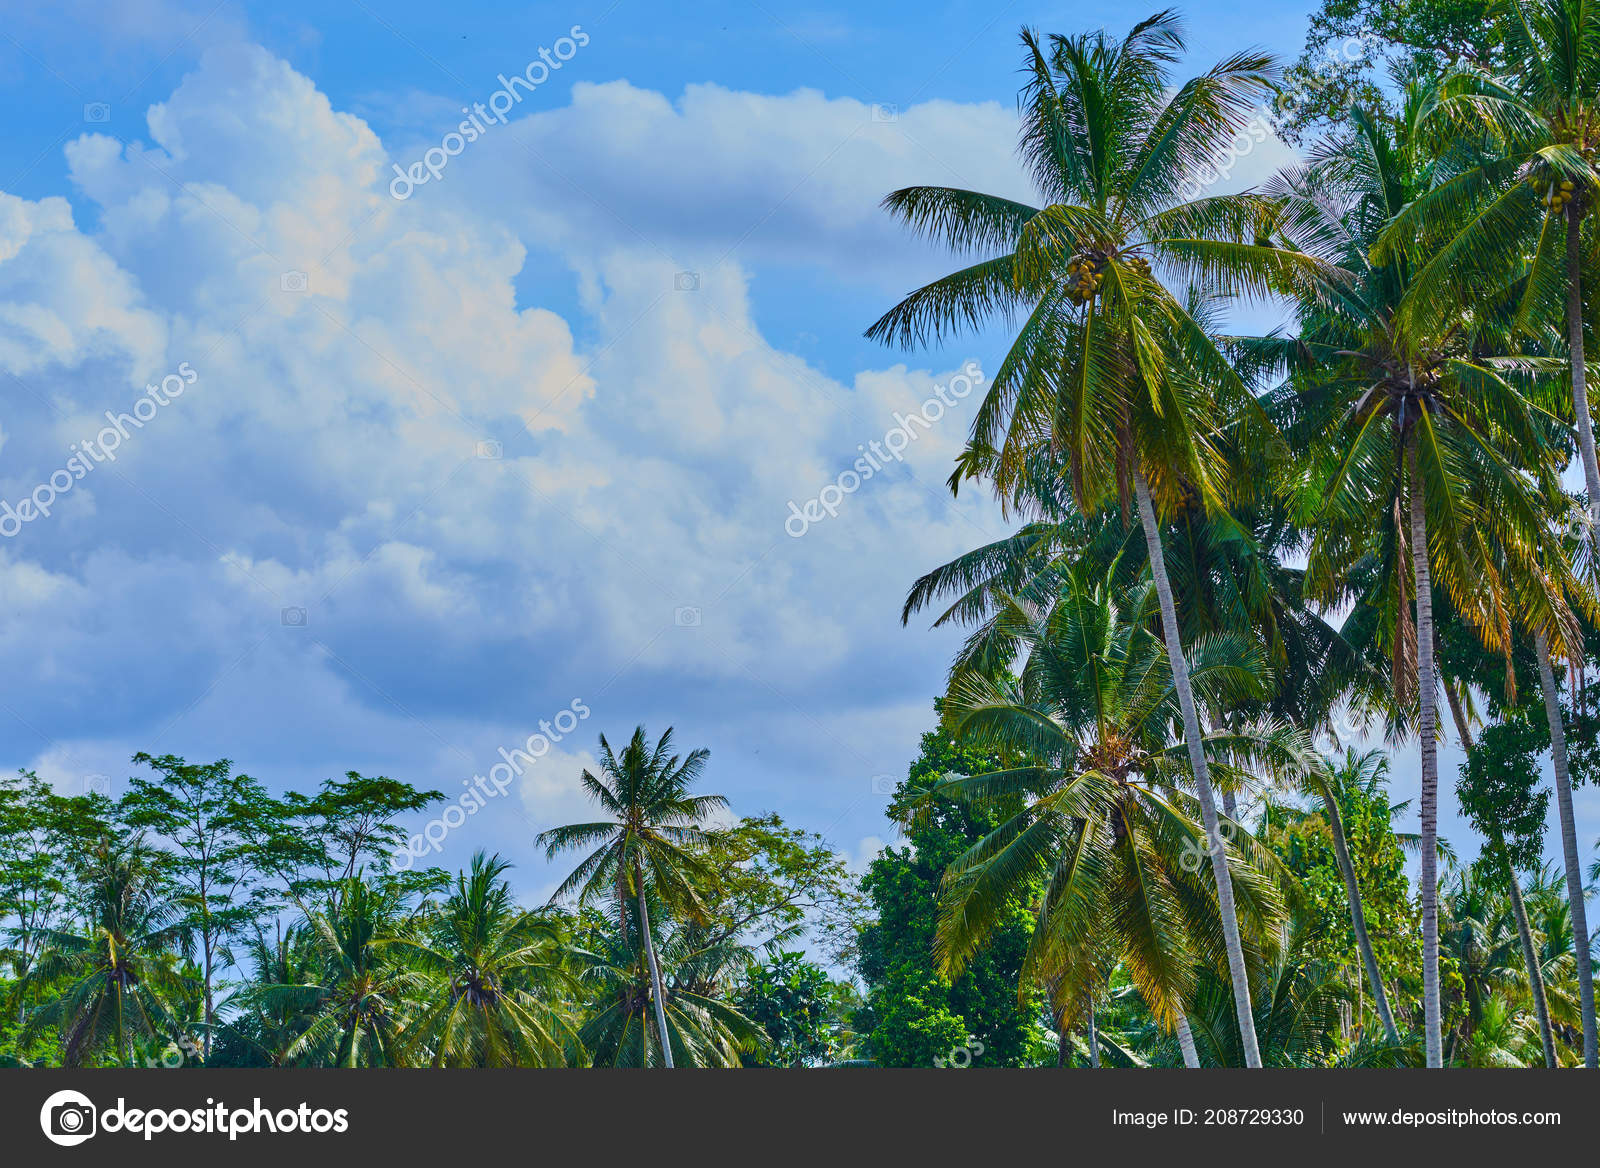 Wallpapers: palm trees wallpaper hd